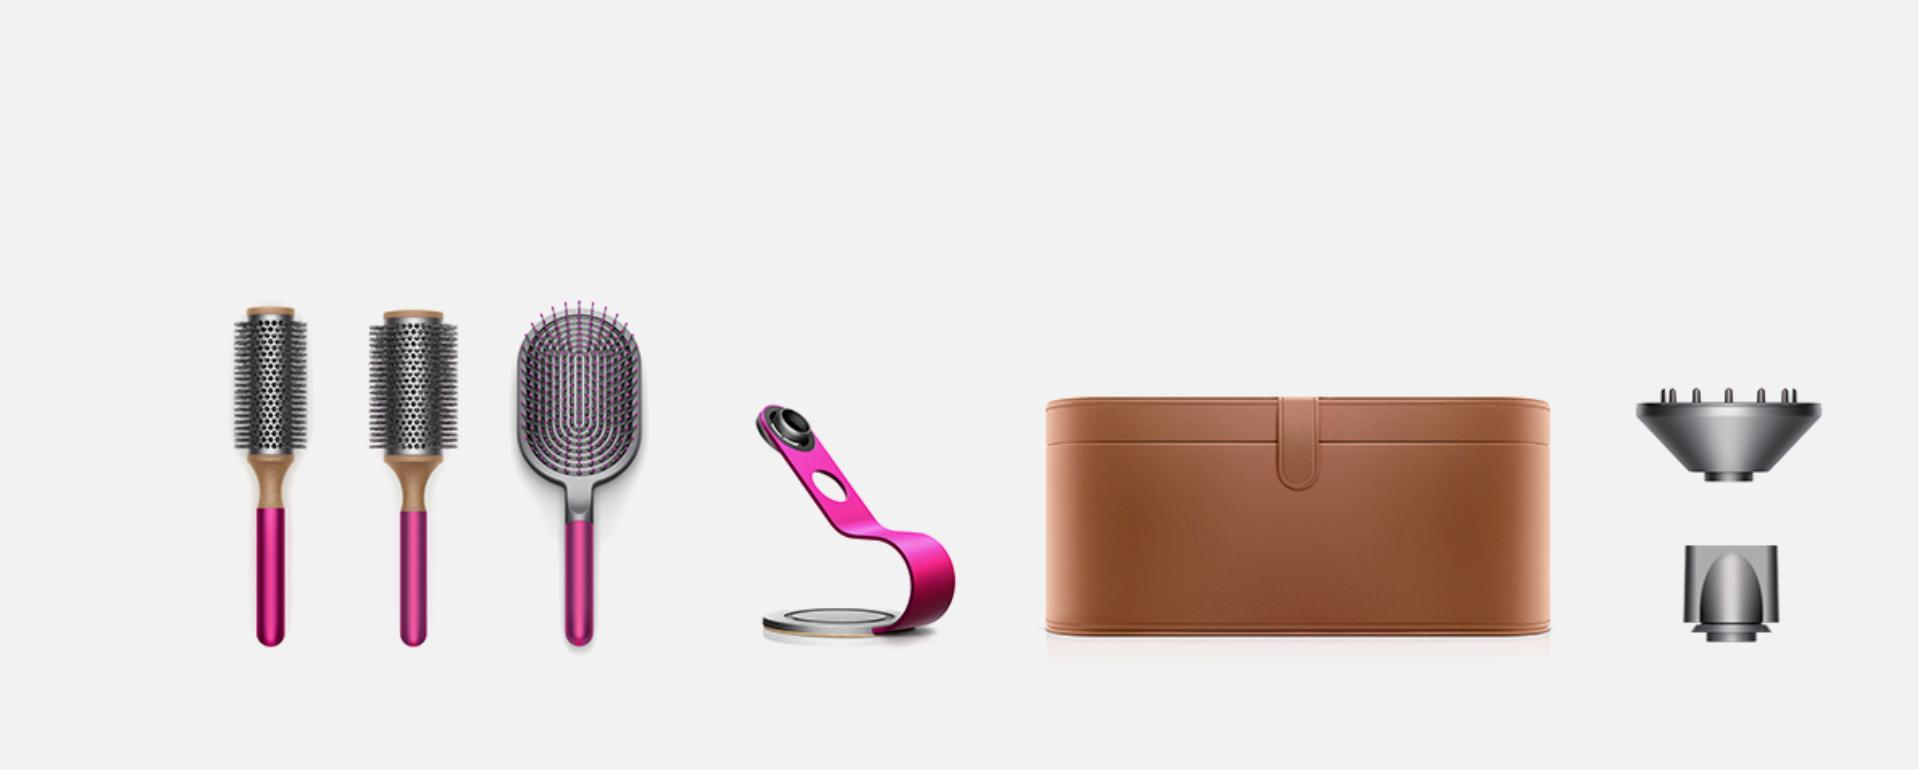 Dyson Supersonic attachments and accessories